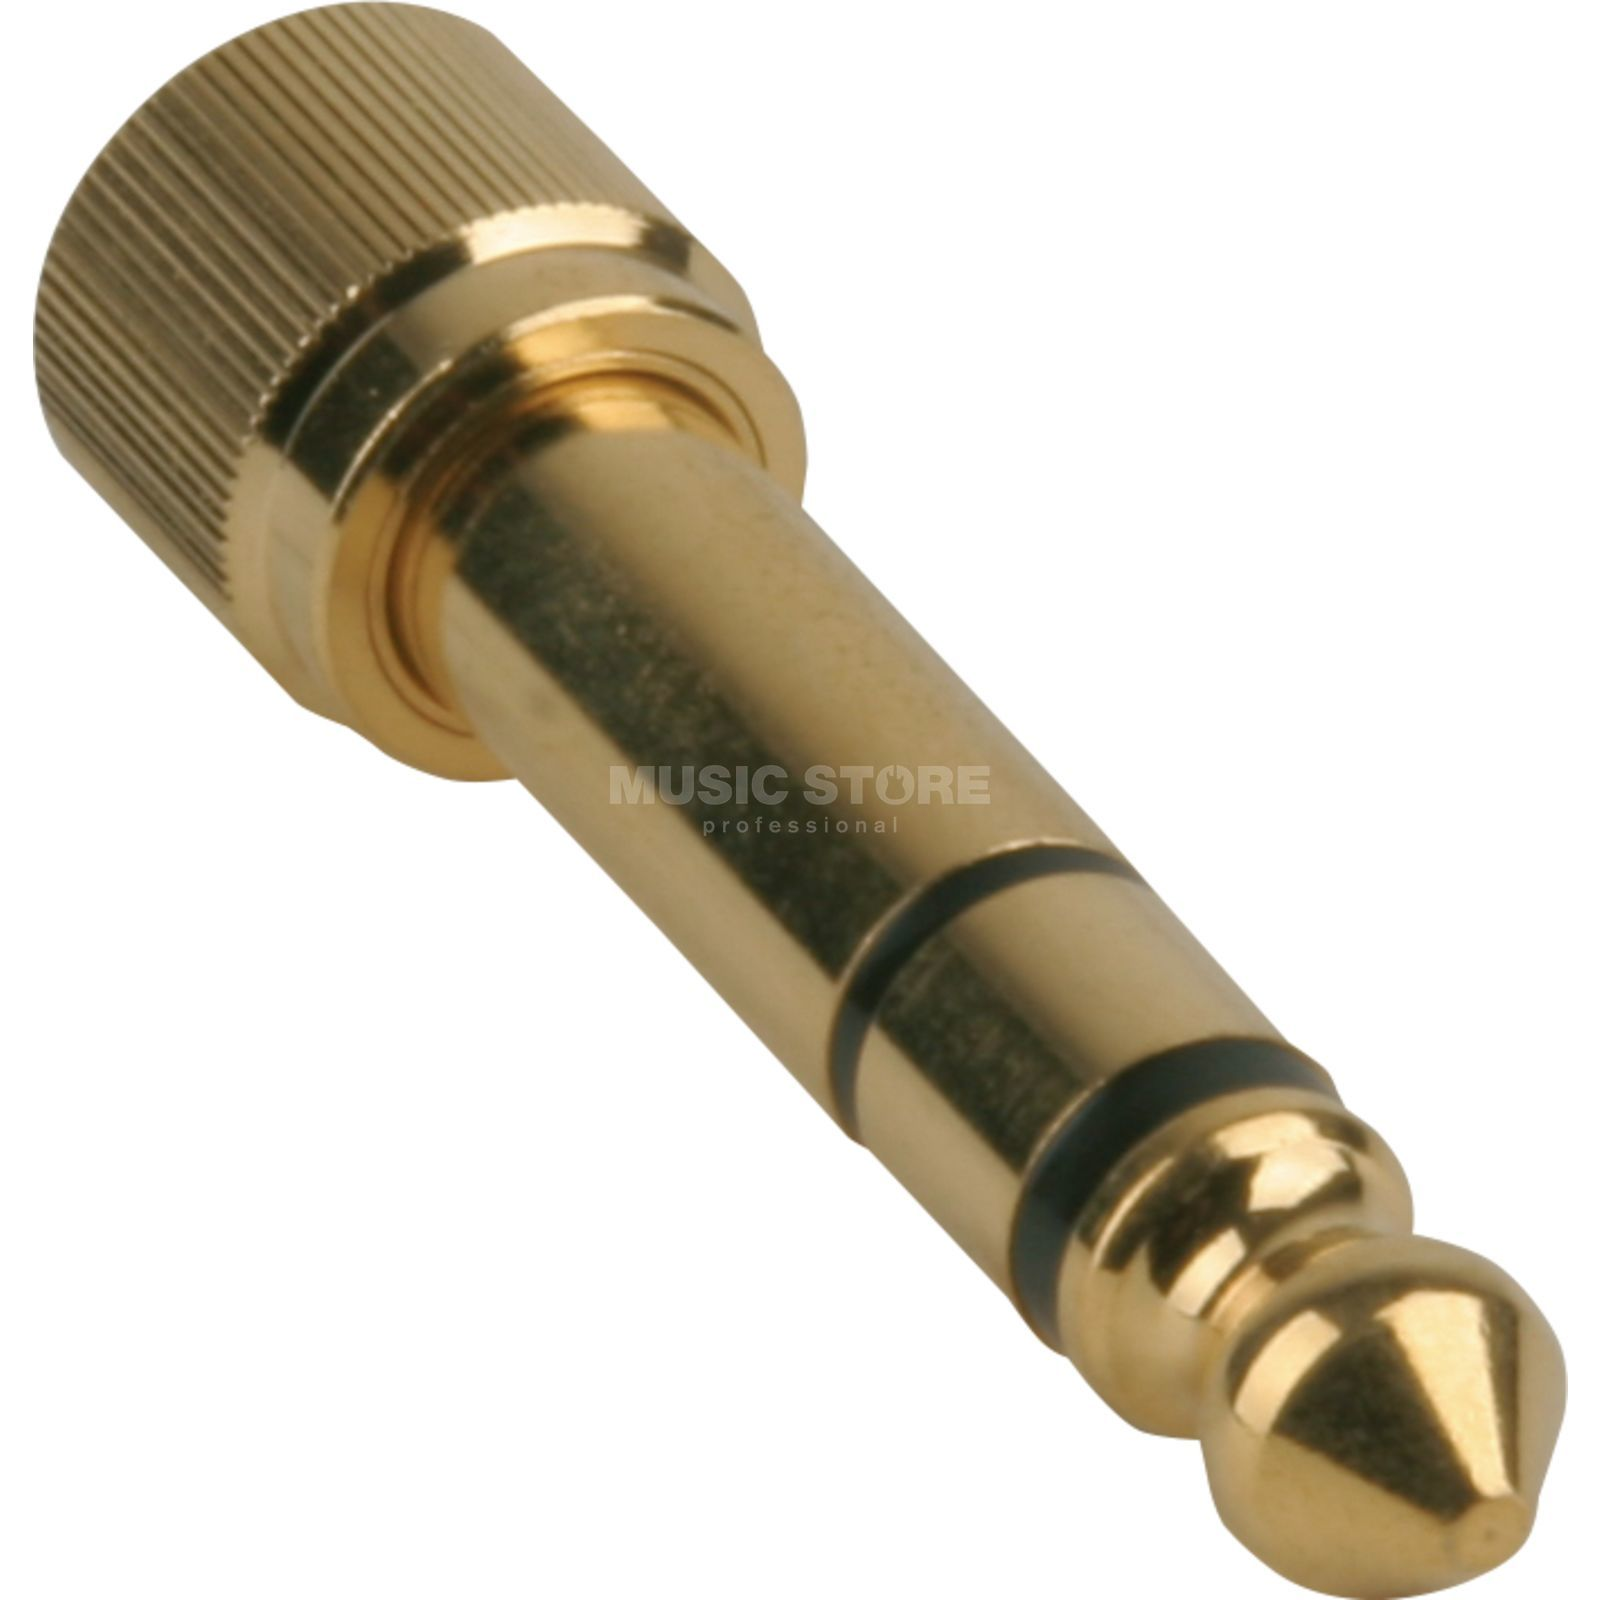 AKG Headphone Jack Adapter With Screw Thread Produktbillede